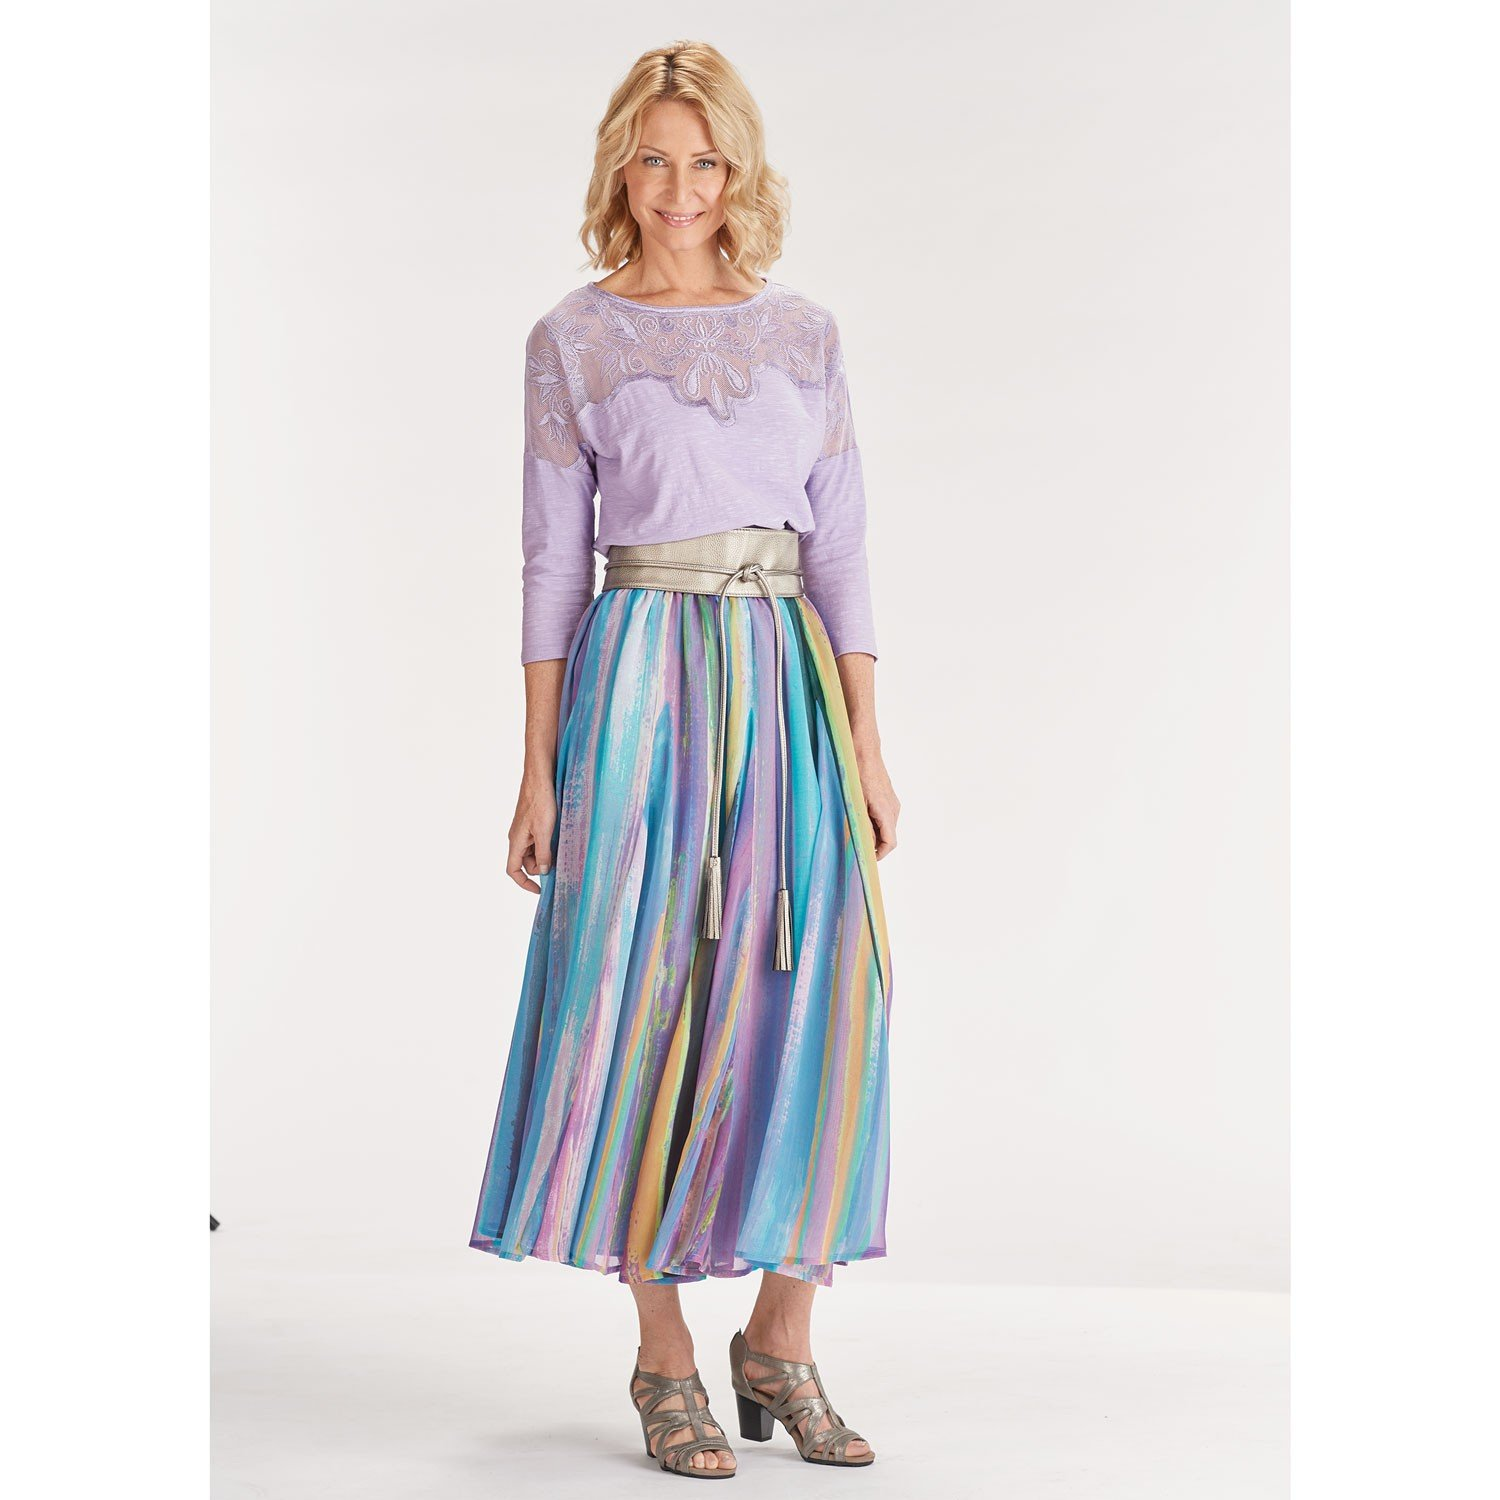 April Cornell Long Peasant Skirt - Waterlily Crinkle Print with Elastic Waist - 1X